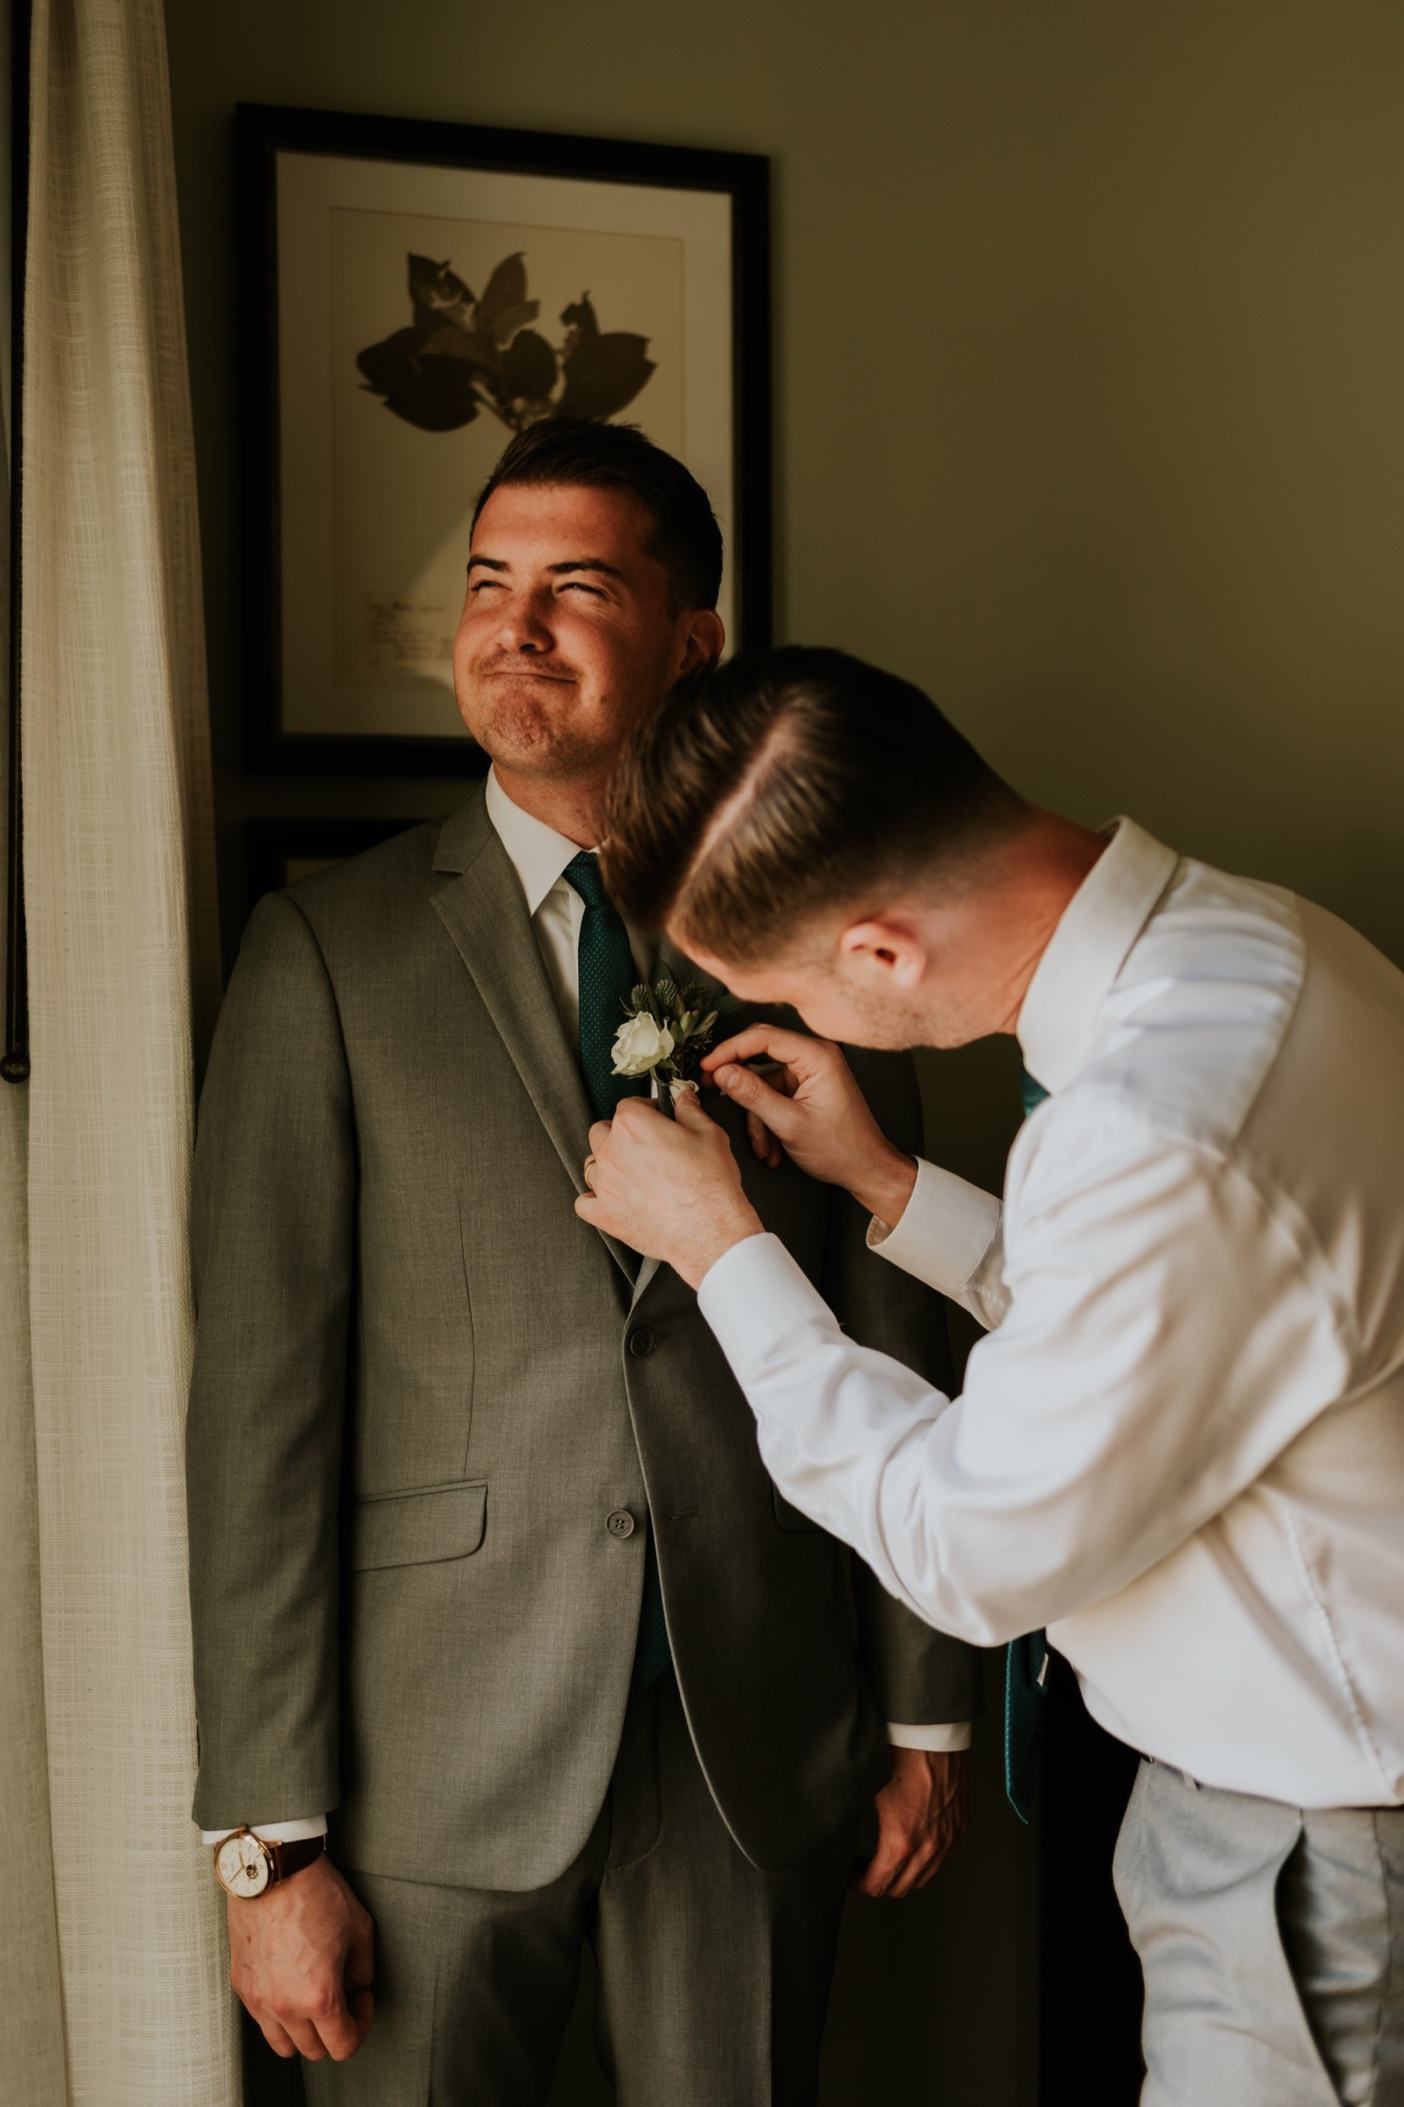 Groom getting ready photos. Canary Hotel Santa Barbara.